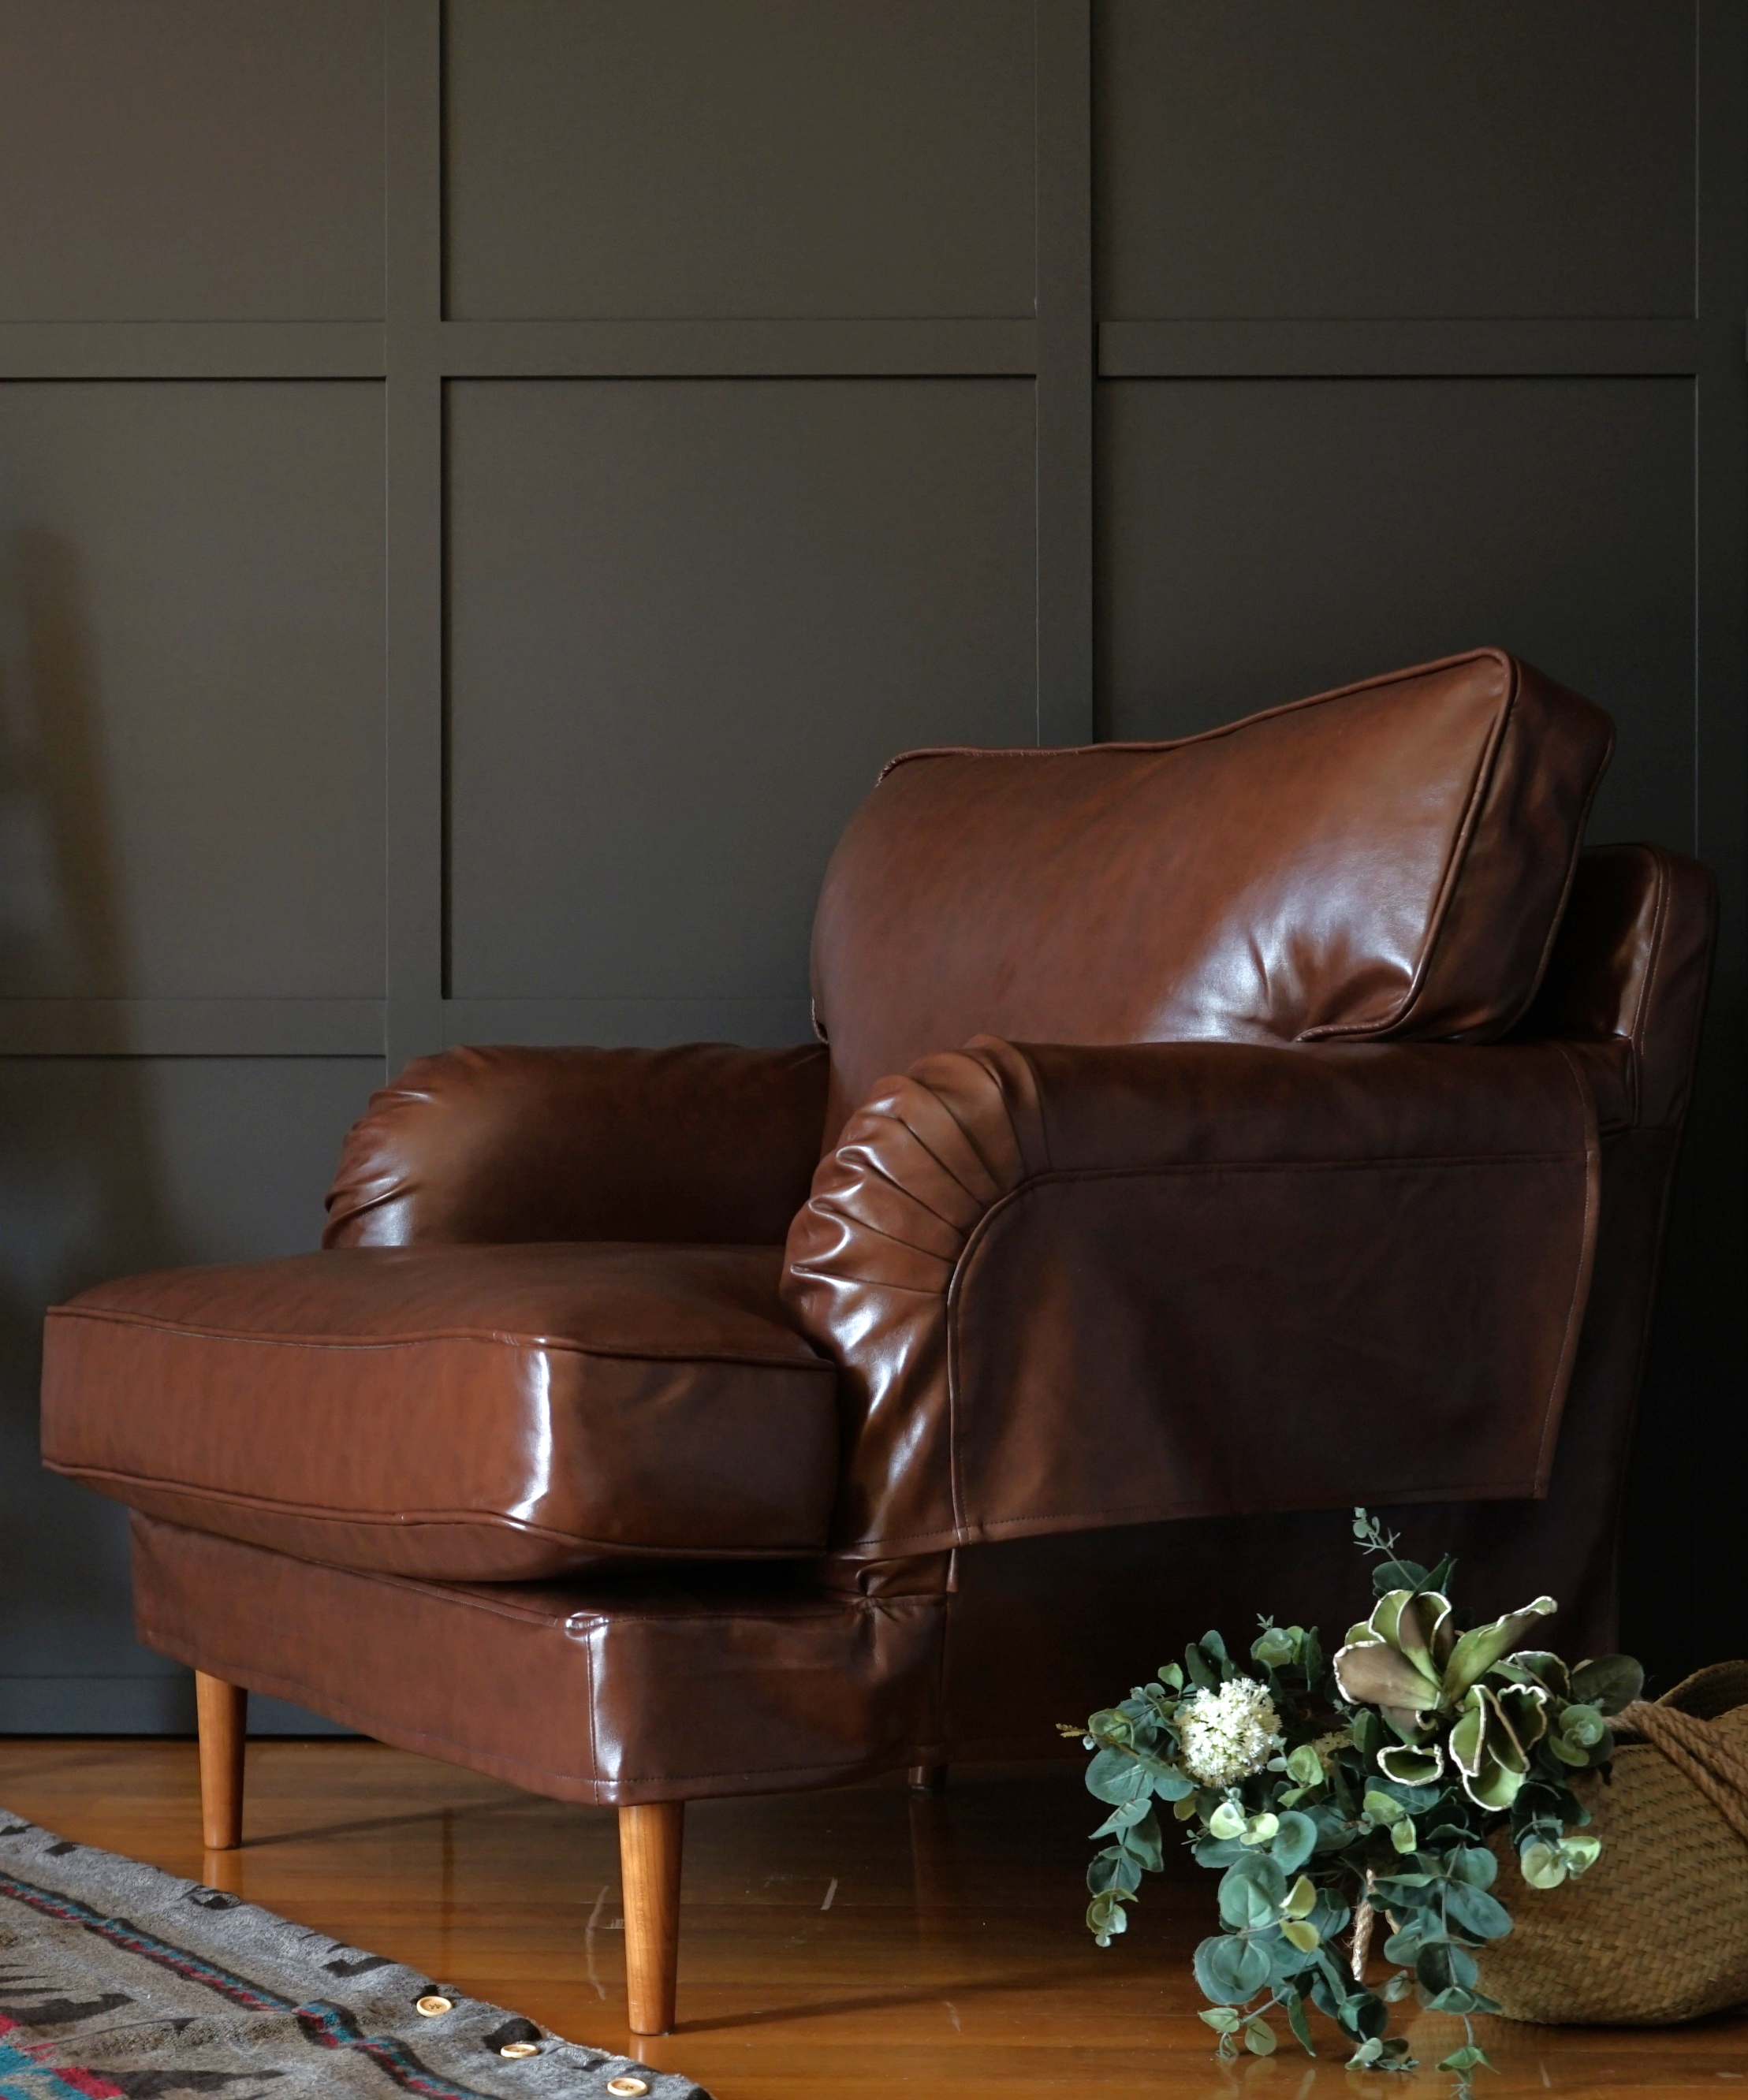 Repairing And Revamping Leather Couch Cushions Cushions On Sofa